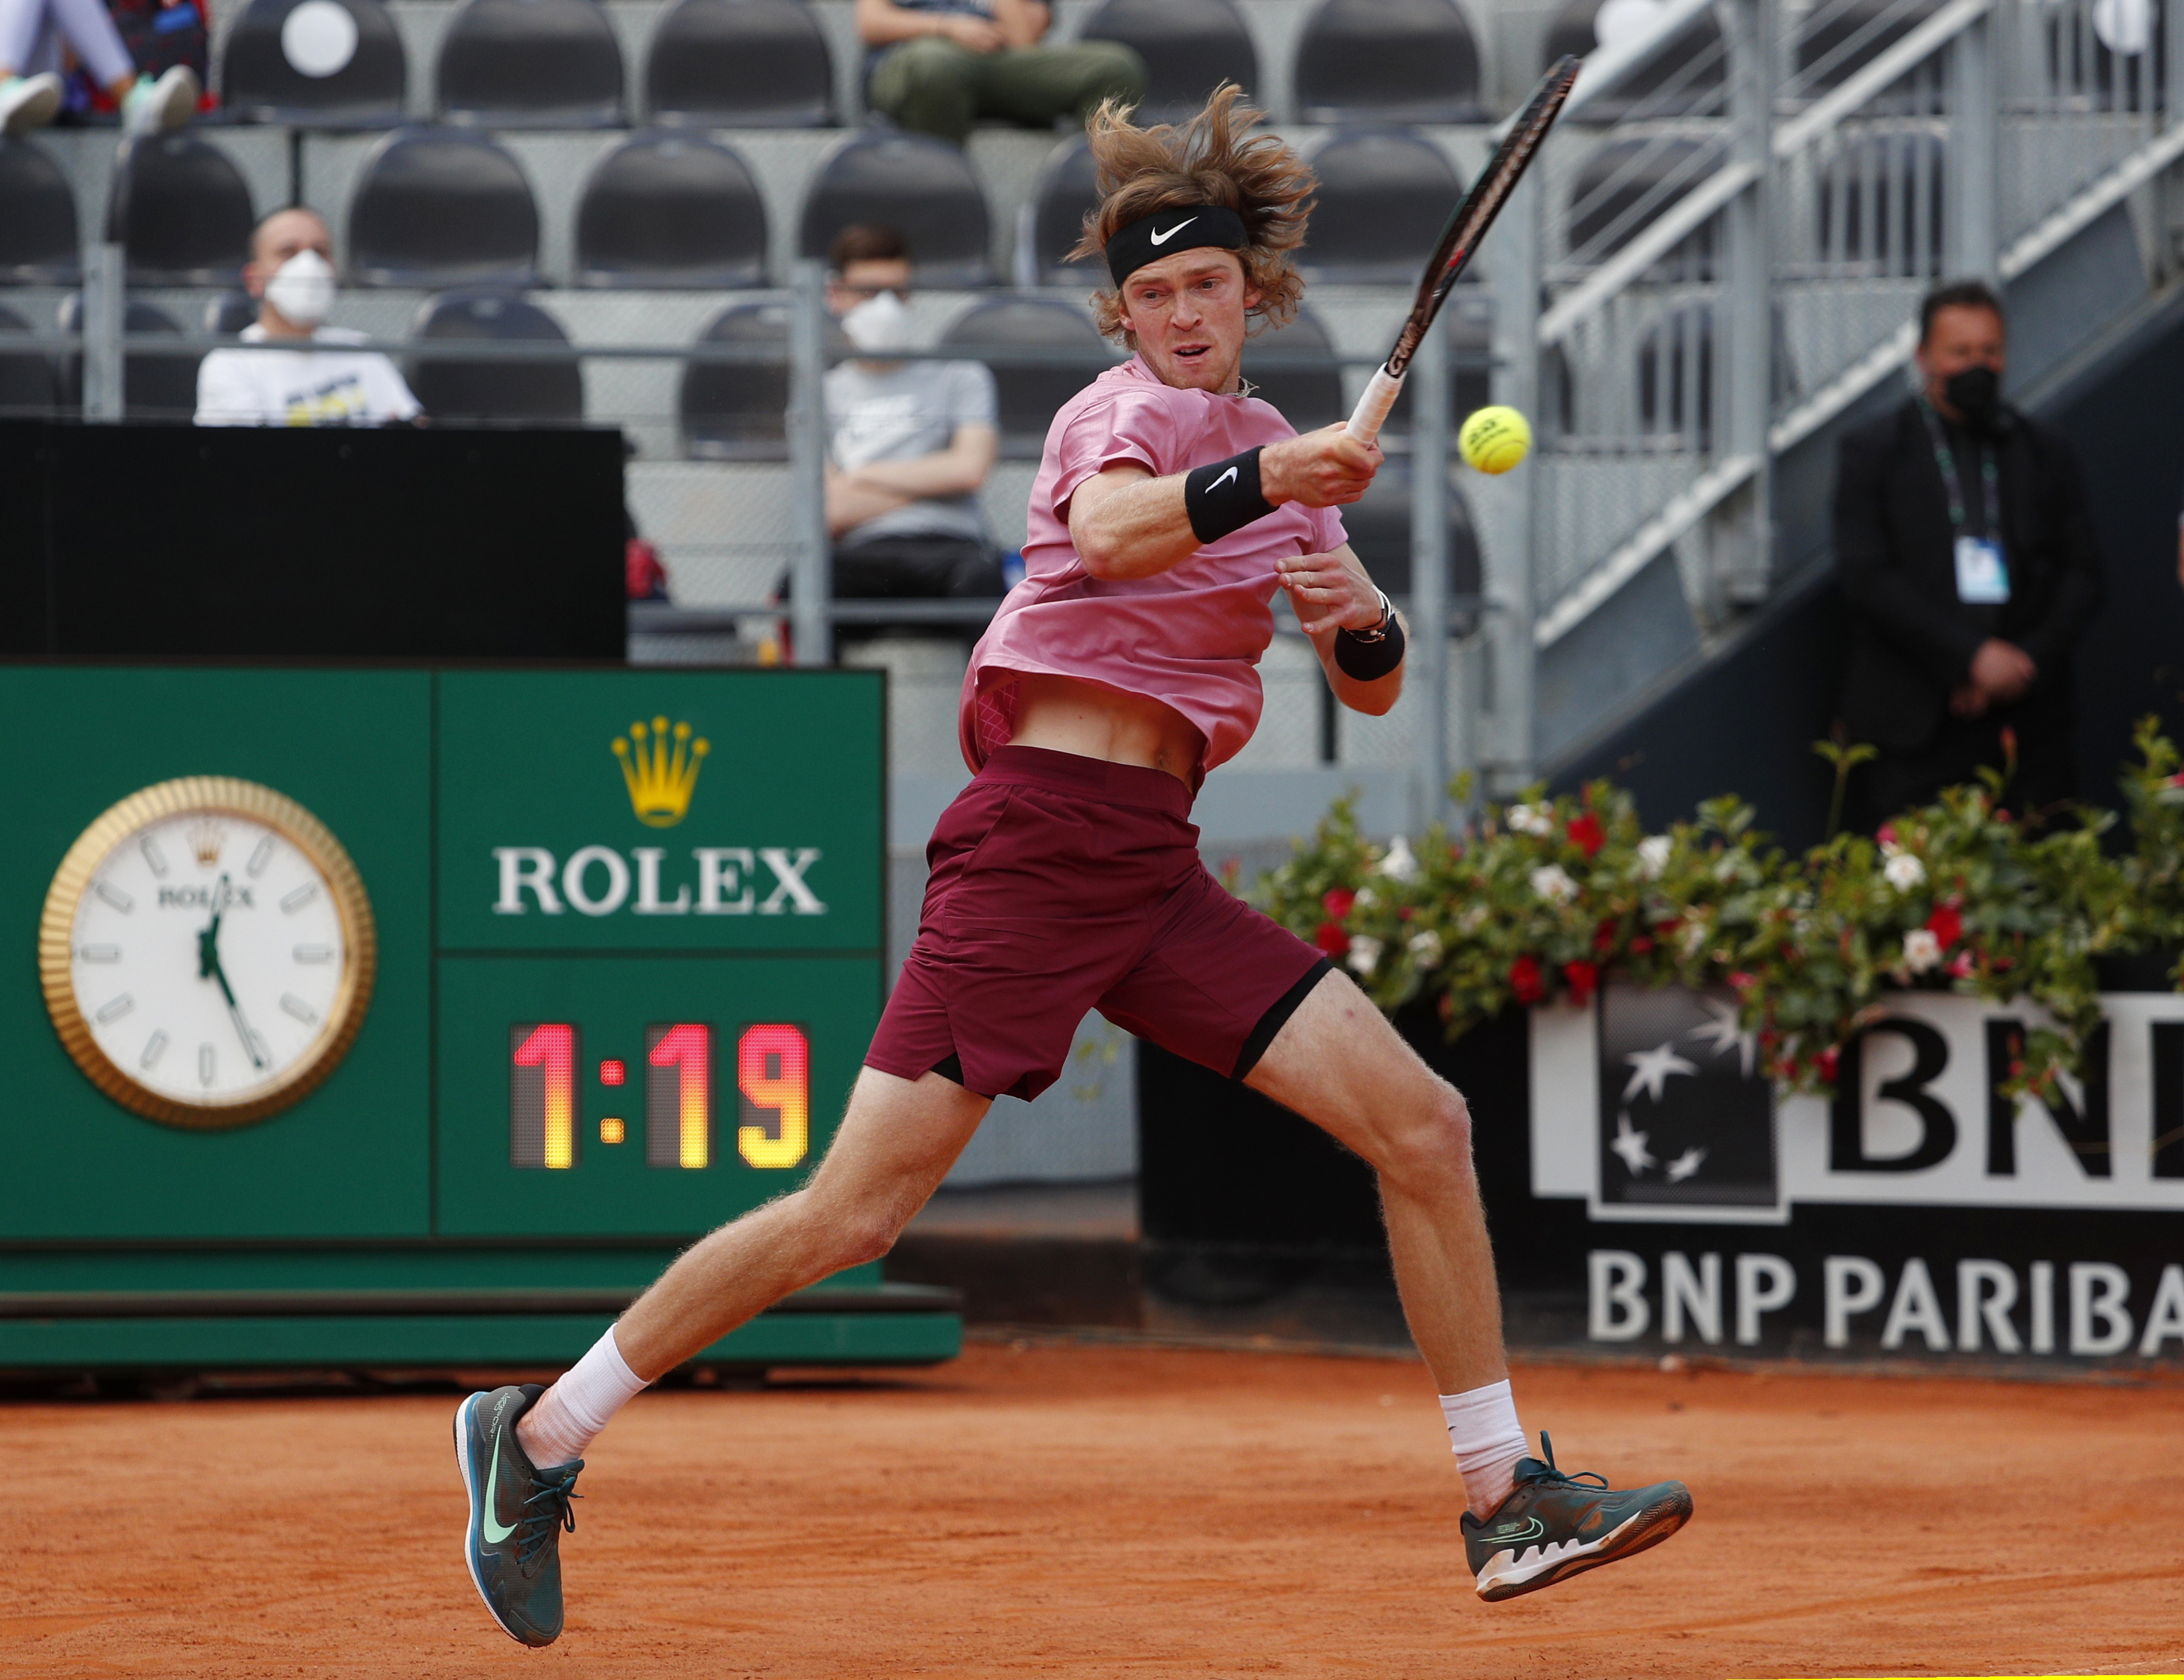 Tennis - ATP Masters 1000 - Italian Open - Foro Italico, Rome, Italy - May 15, 2021 Russia's Andrey Rublev in action during his quarter final match against Italy's Lorenzo Sonego REUTERS/Guglielmo Mangiapane